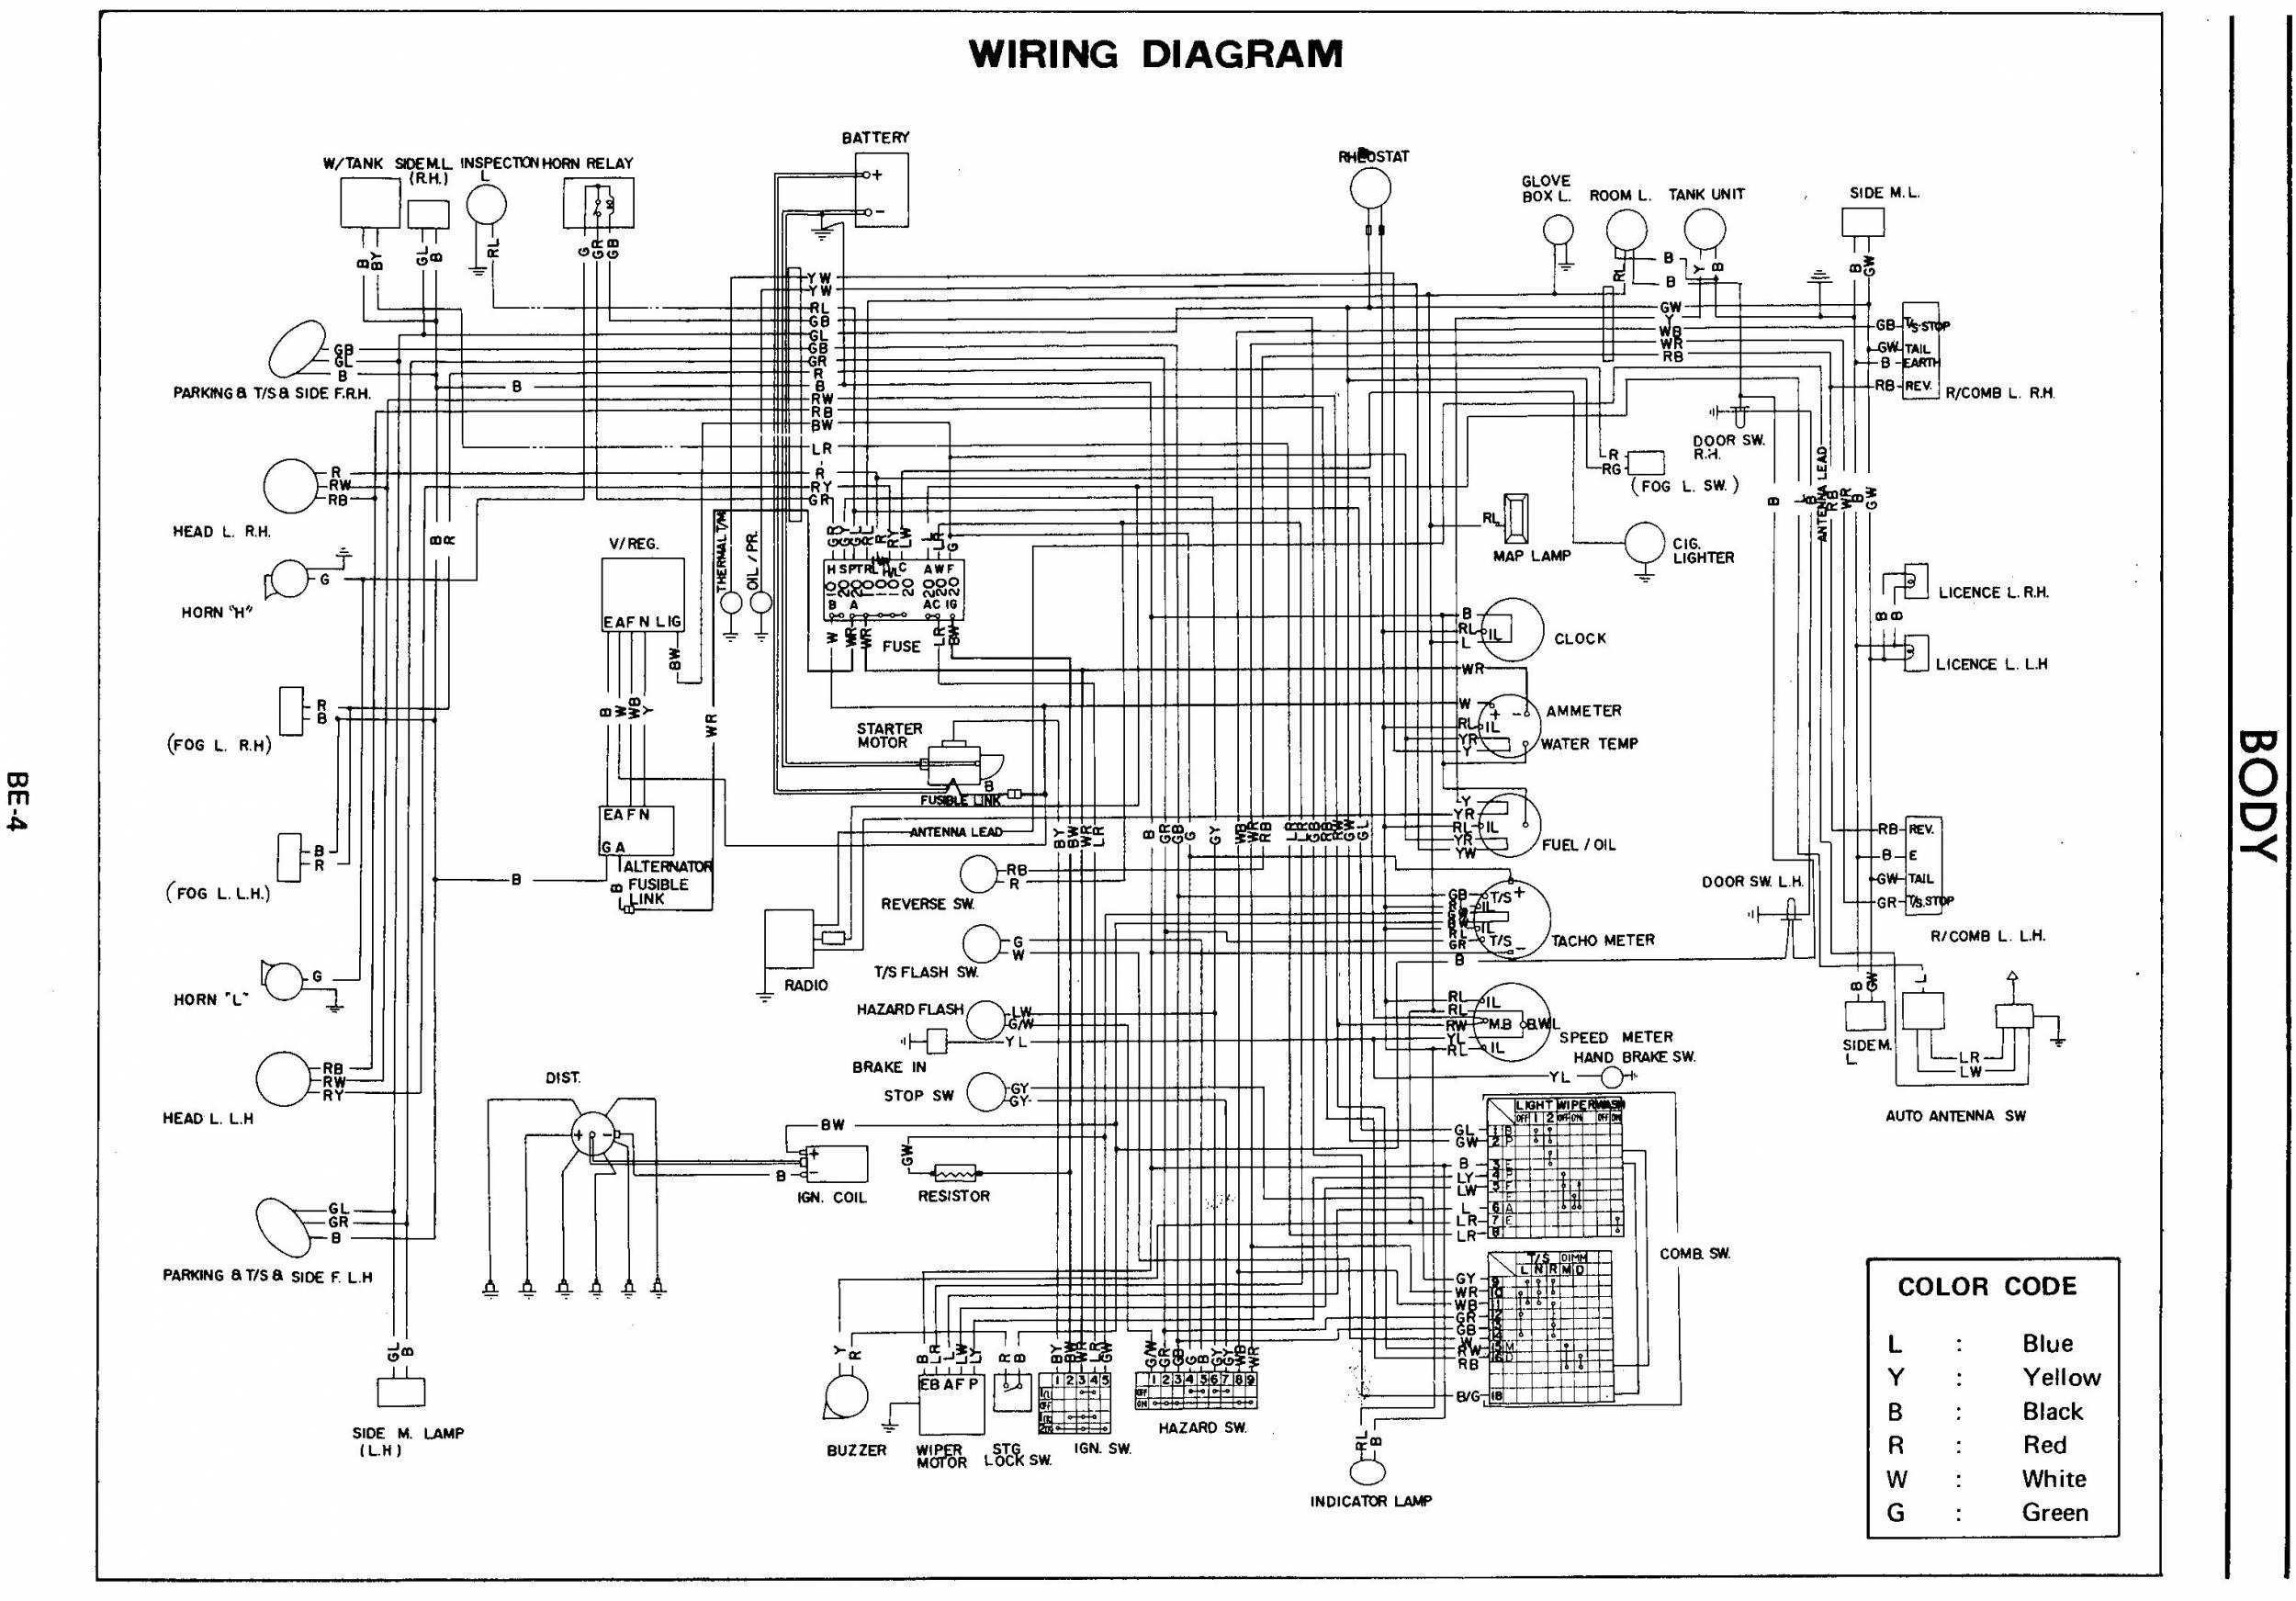 Mercedes Sprinter Wiring Diagrams 2001 Dodge Dakota Wiring Diagram